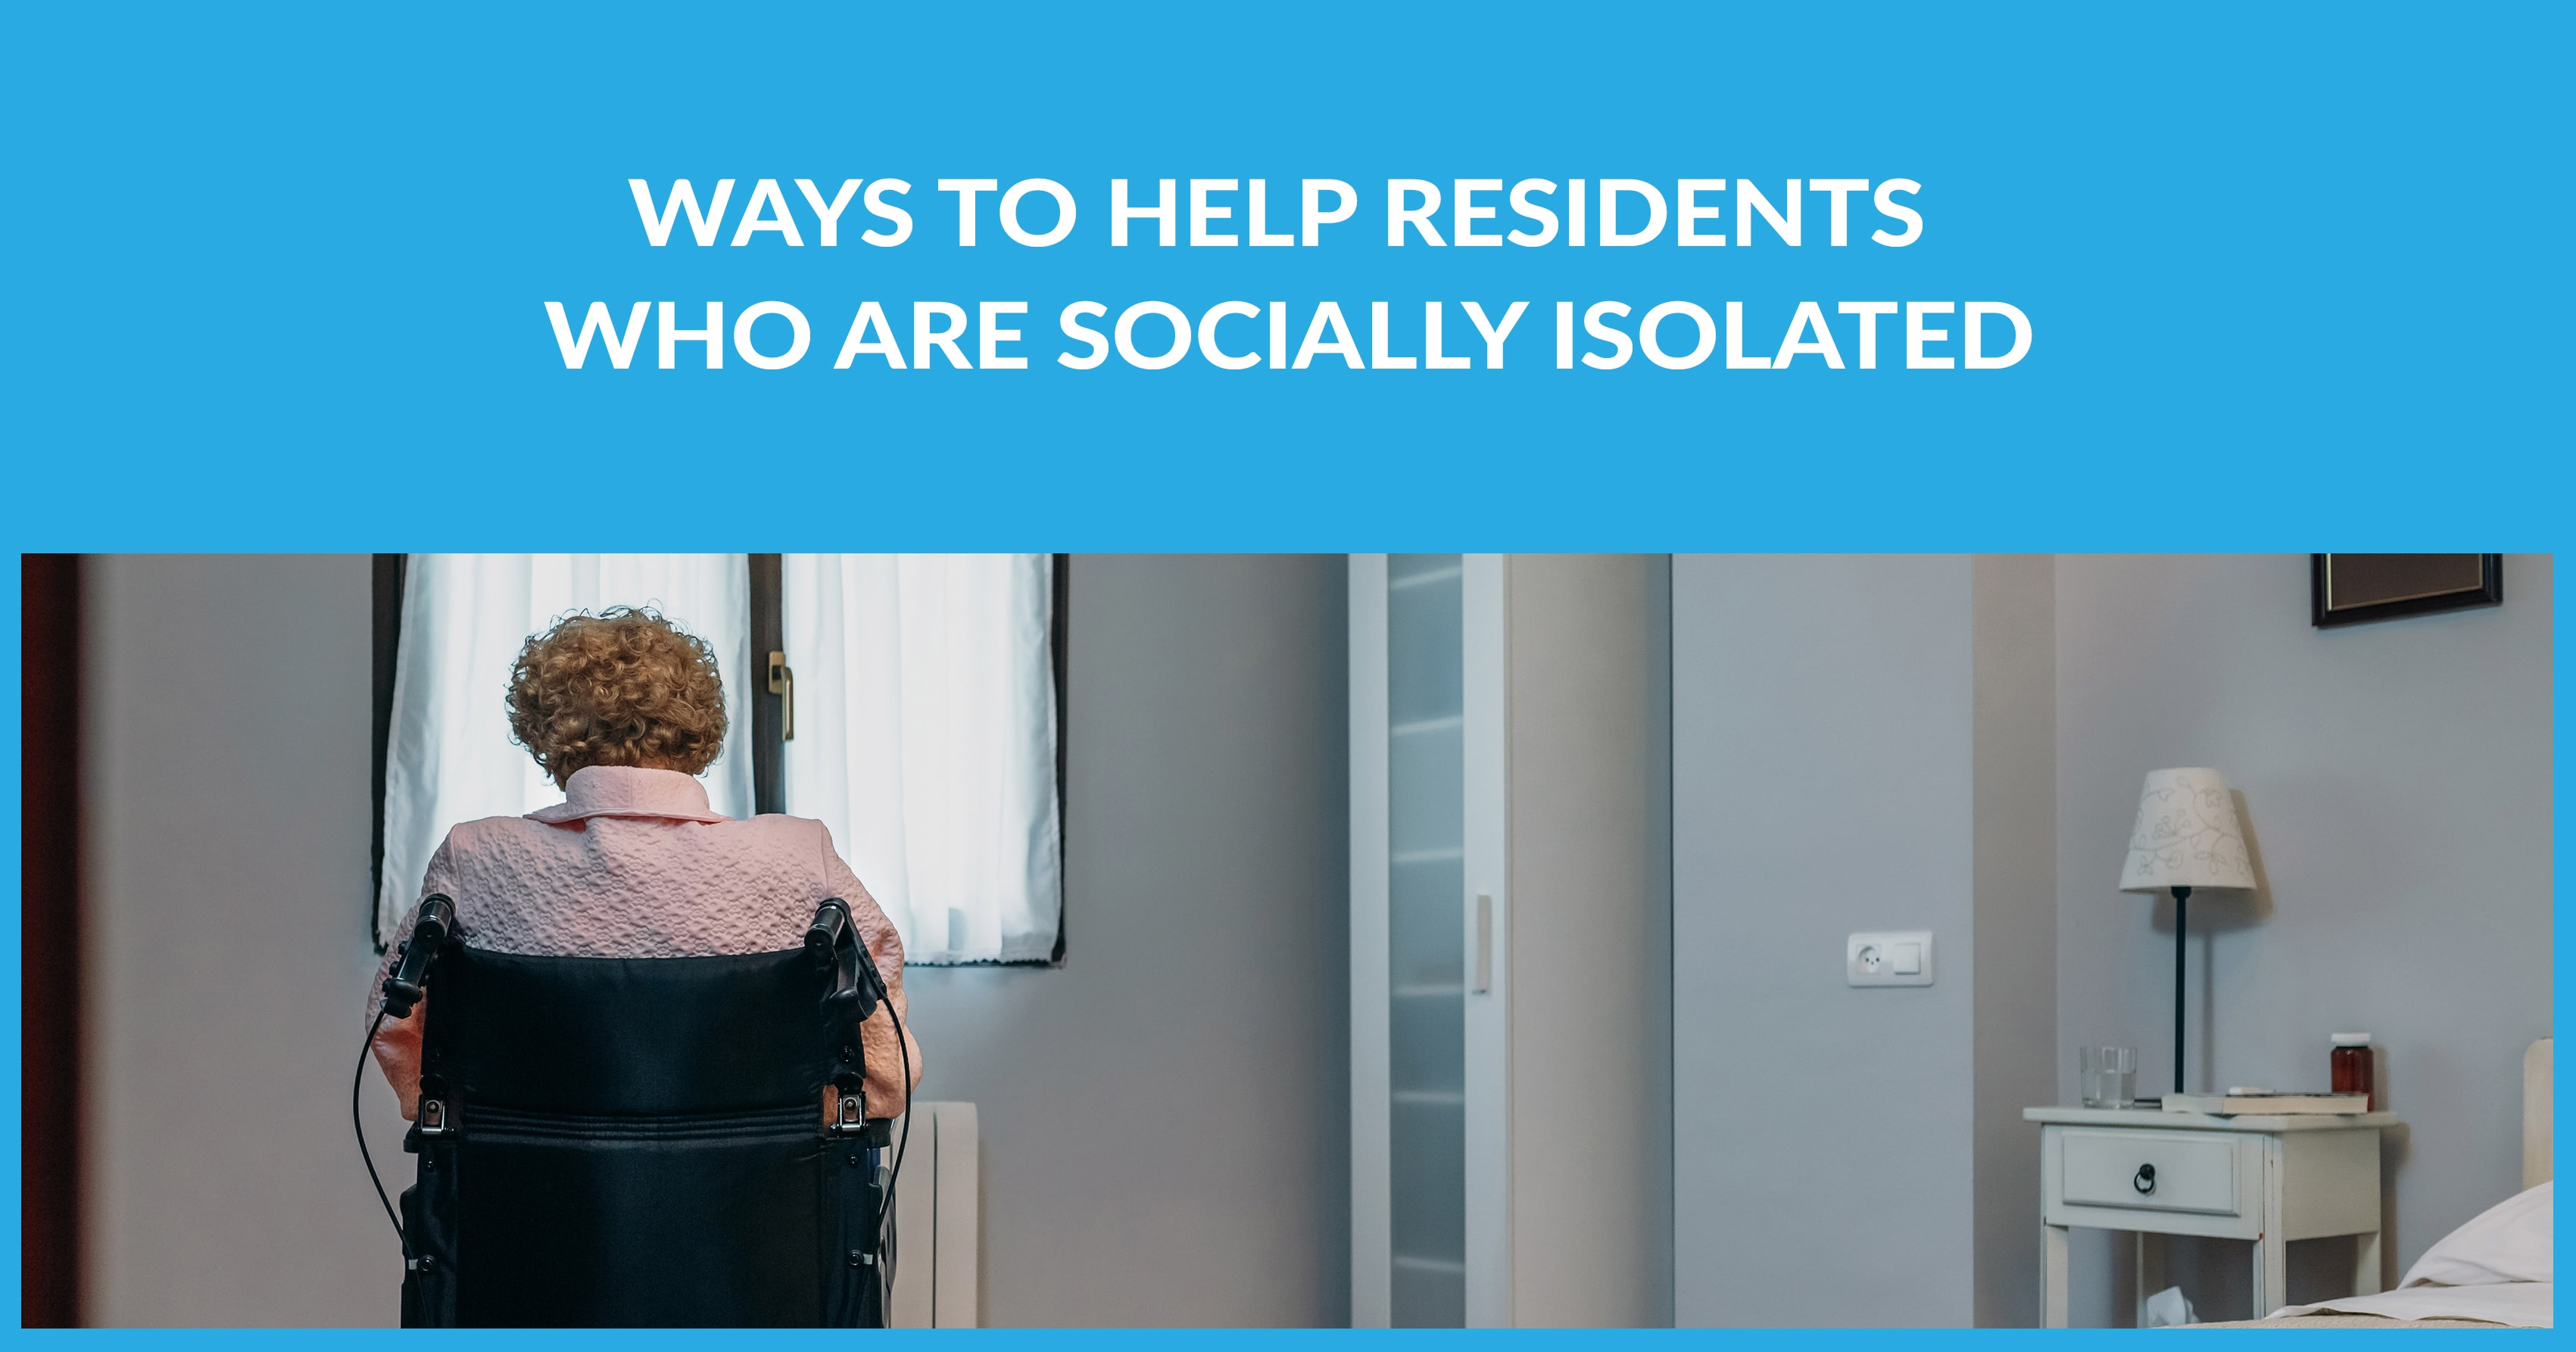 Ways to Help Residents Who Are Socially Isolated